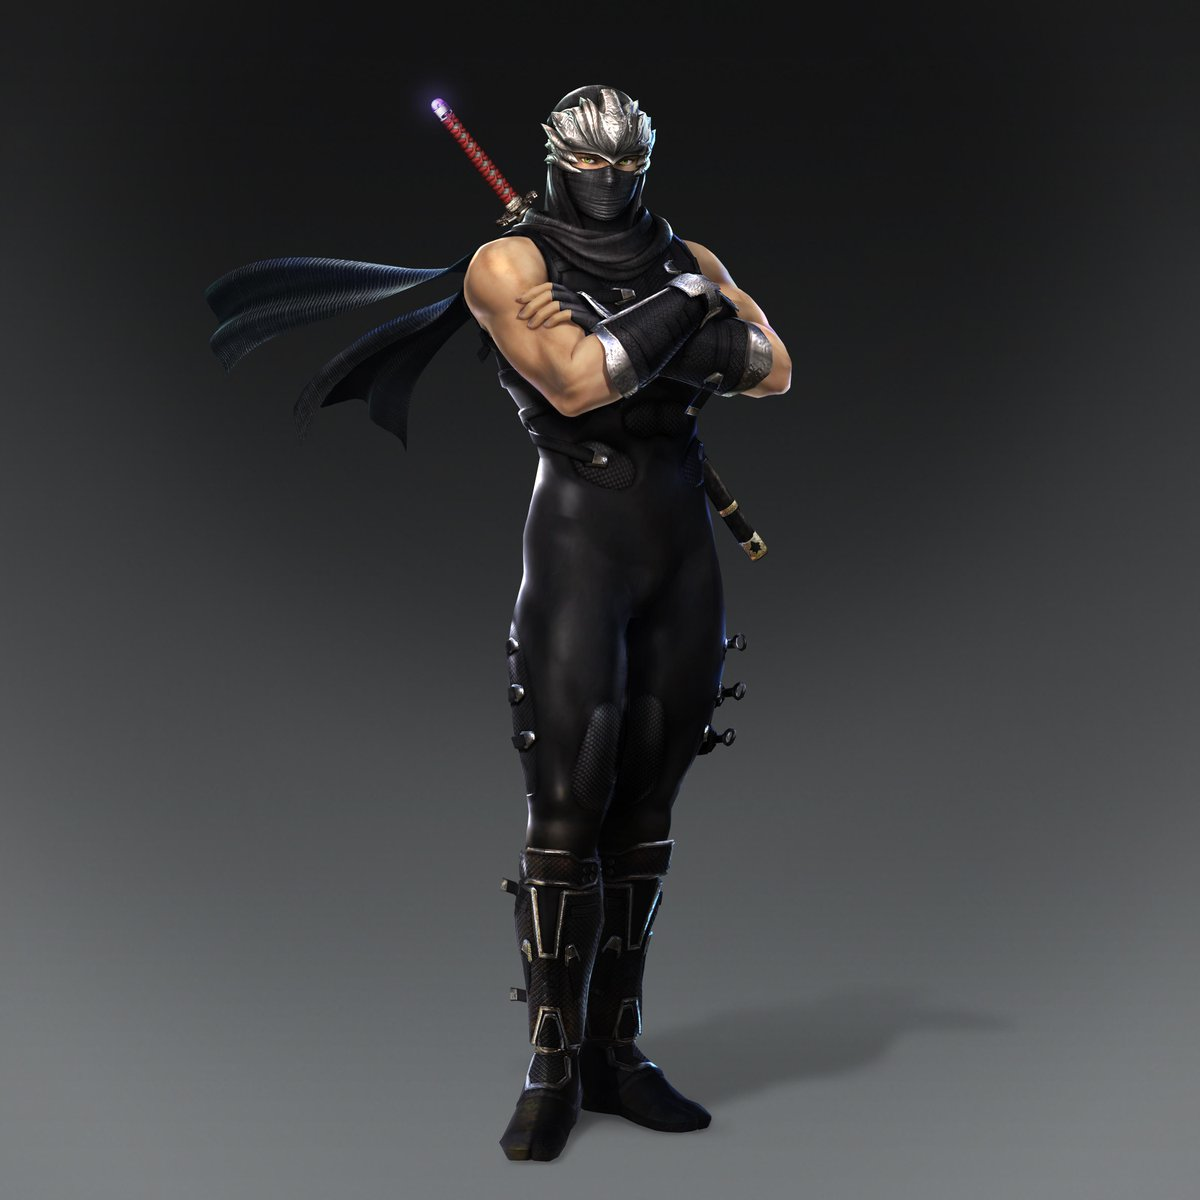 Ryu hayabusa vs batman